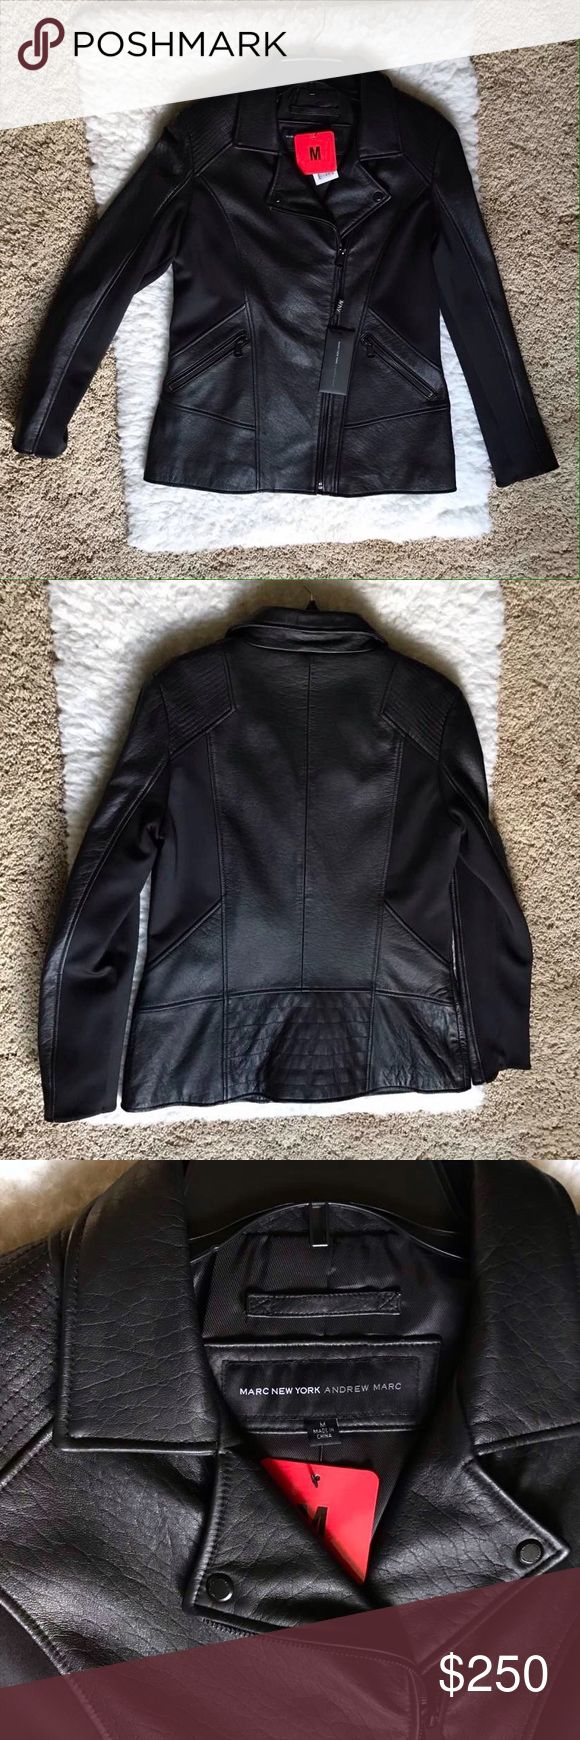 NWT Marc NY Andrew Marc Leather Jacket NWT Marc NY Andrew Marc Leather Jacket Color: Black Size Medium Retail Value: $400 Brand: Marc New York Andrew Marc Andrew Marc Jackets & Coats